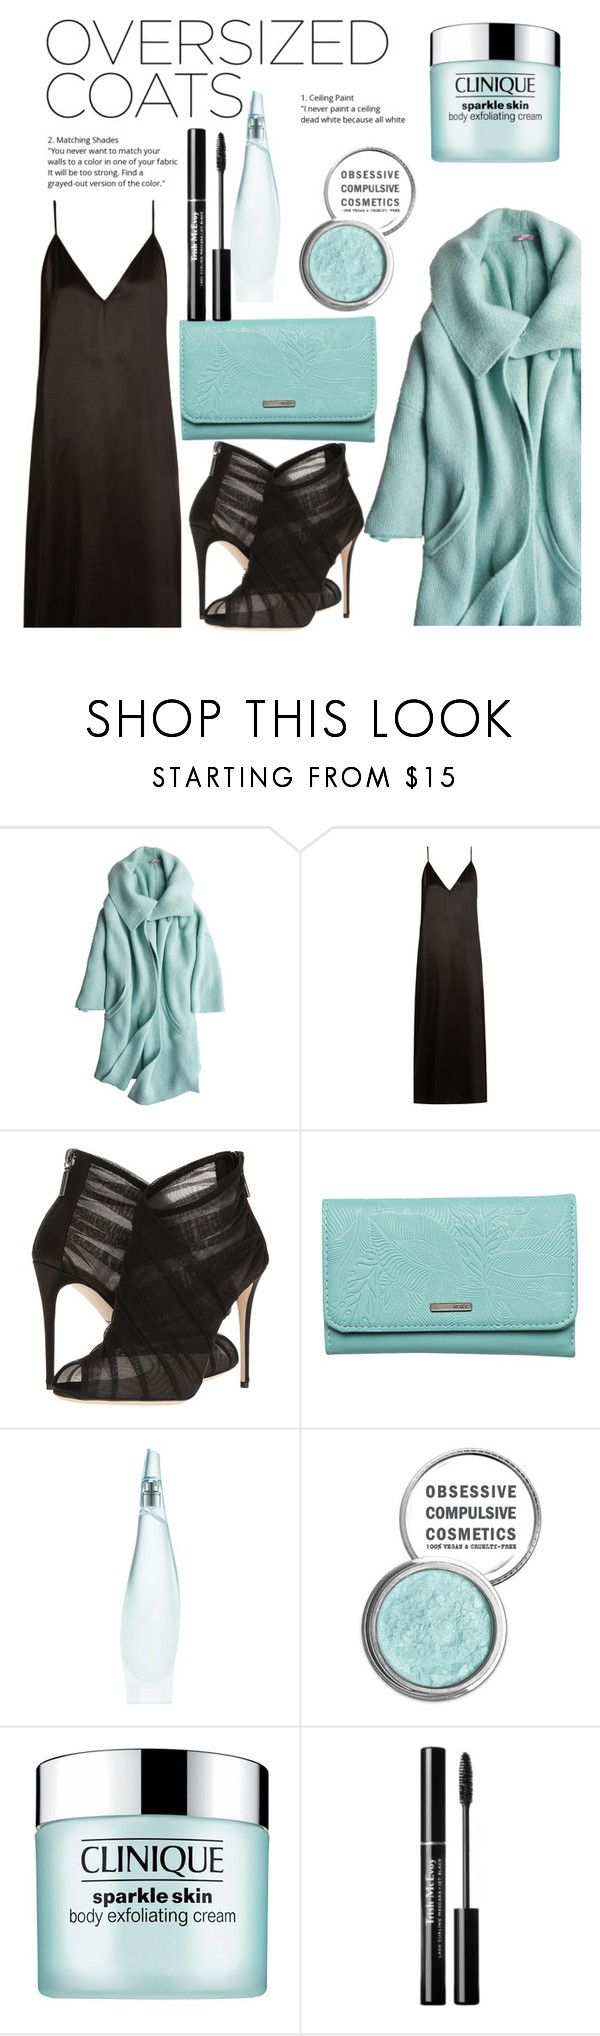 """""""Oversized Jackets"""" by anna-belair ❤ liked on Polyvore featuring Calypso St. Barth, Raey, Dolce&Gabbana, Roxy, Donna Karan, Obsessive Compulsive Cosmetics and Clinique"""